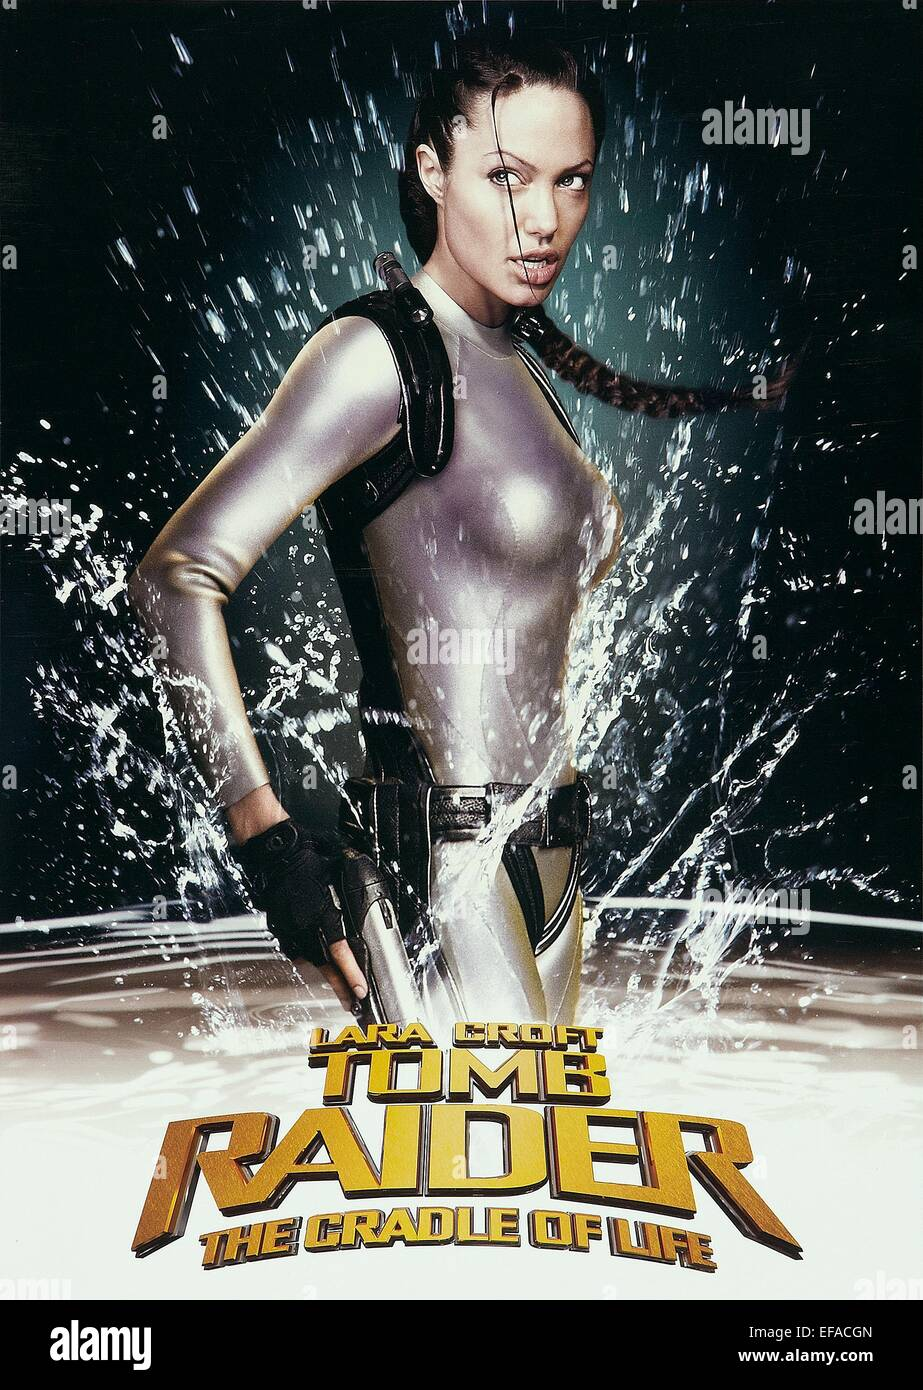 tomb raider 2 game poster